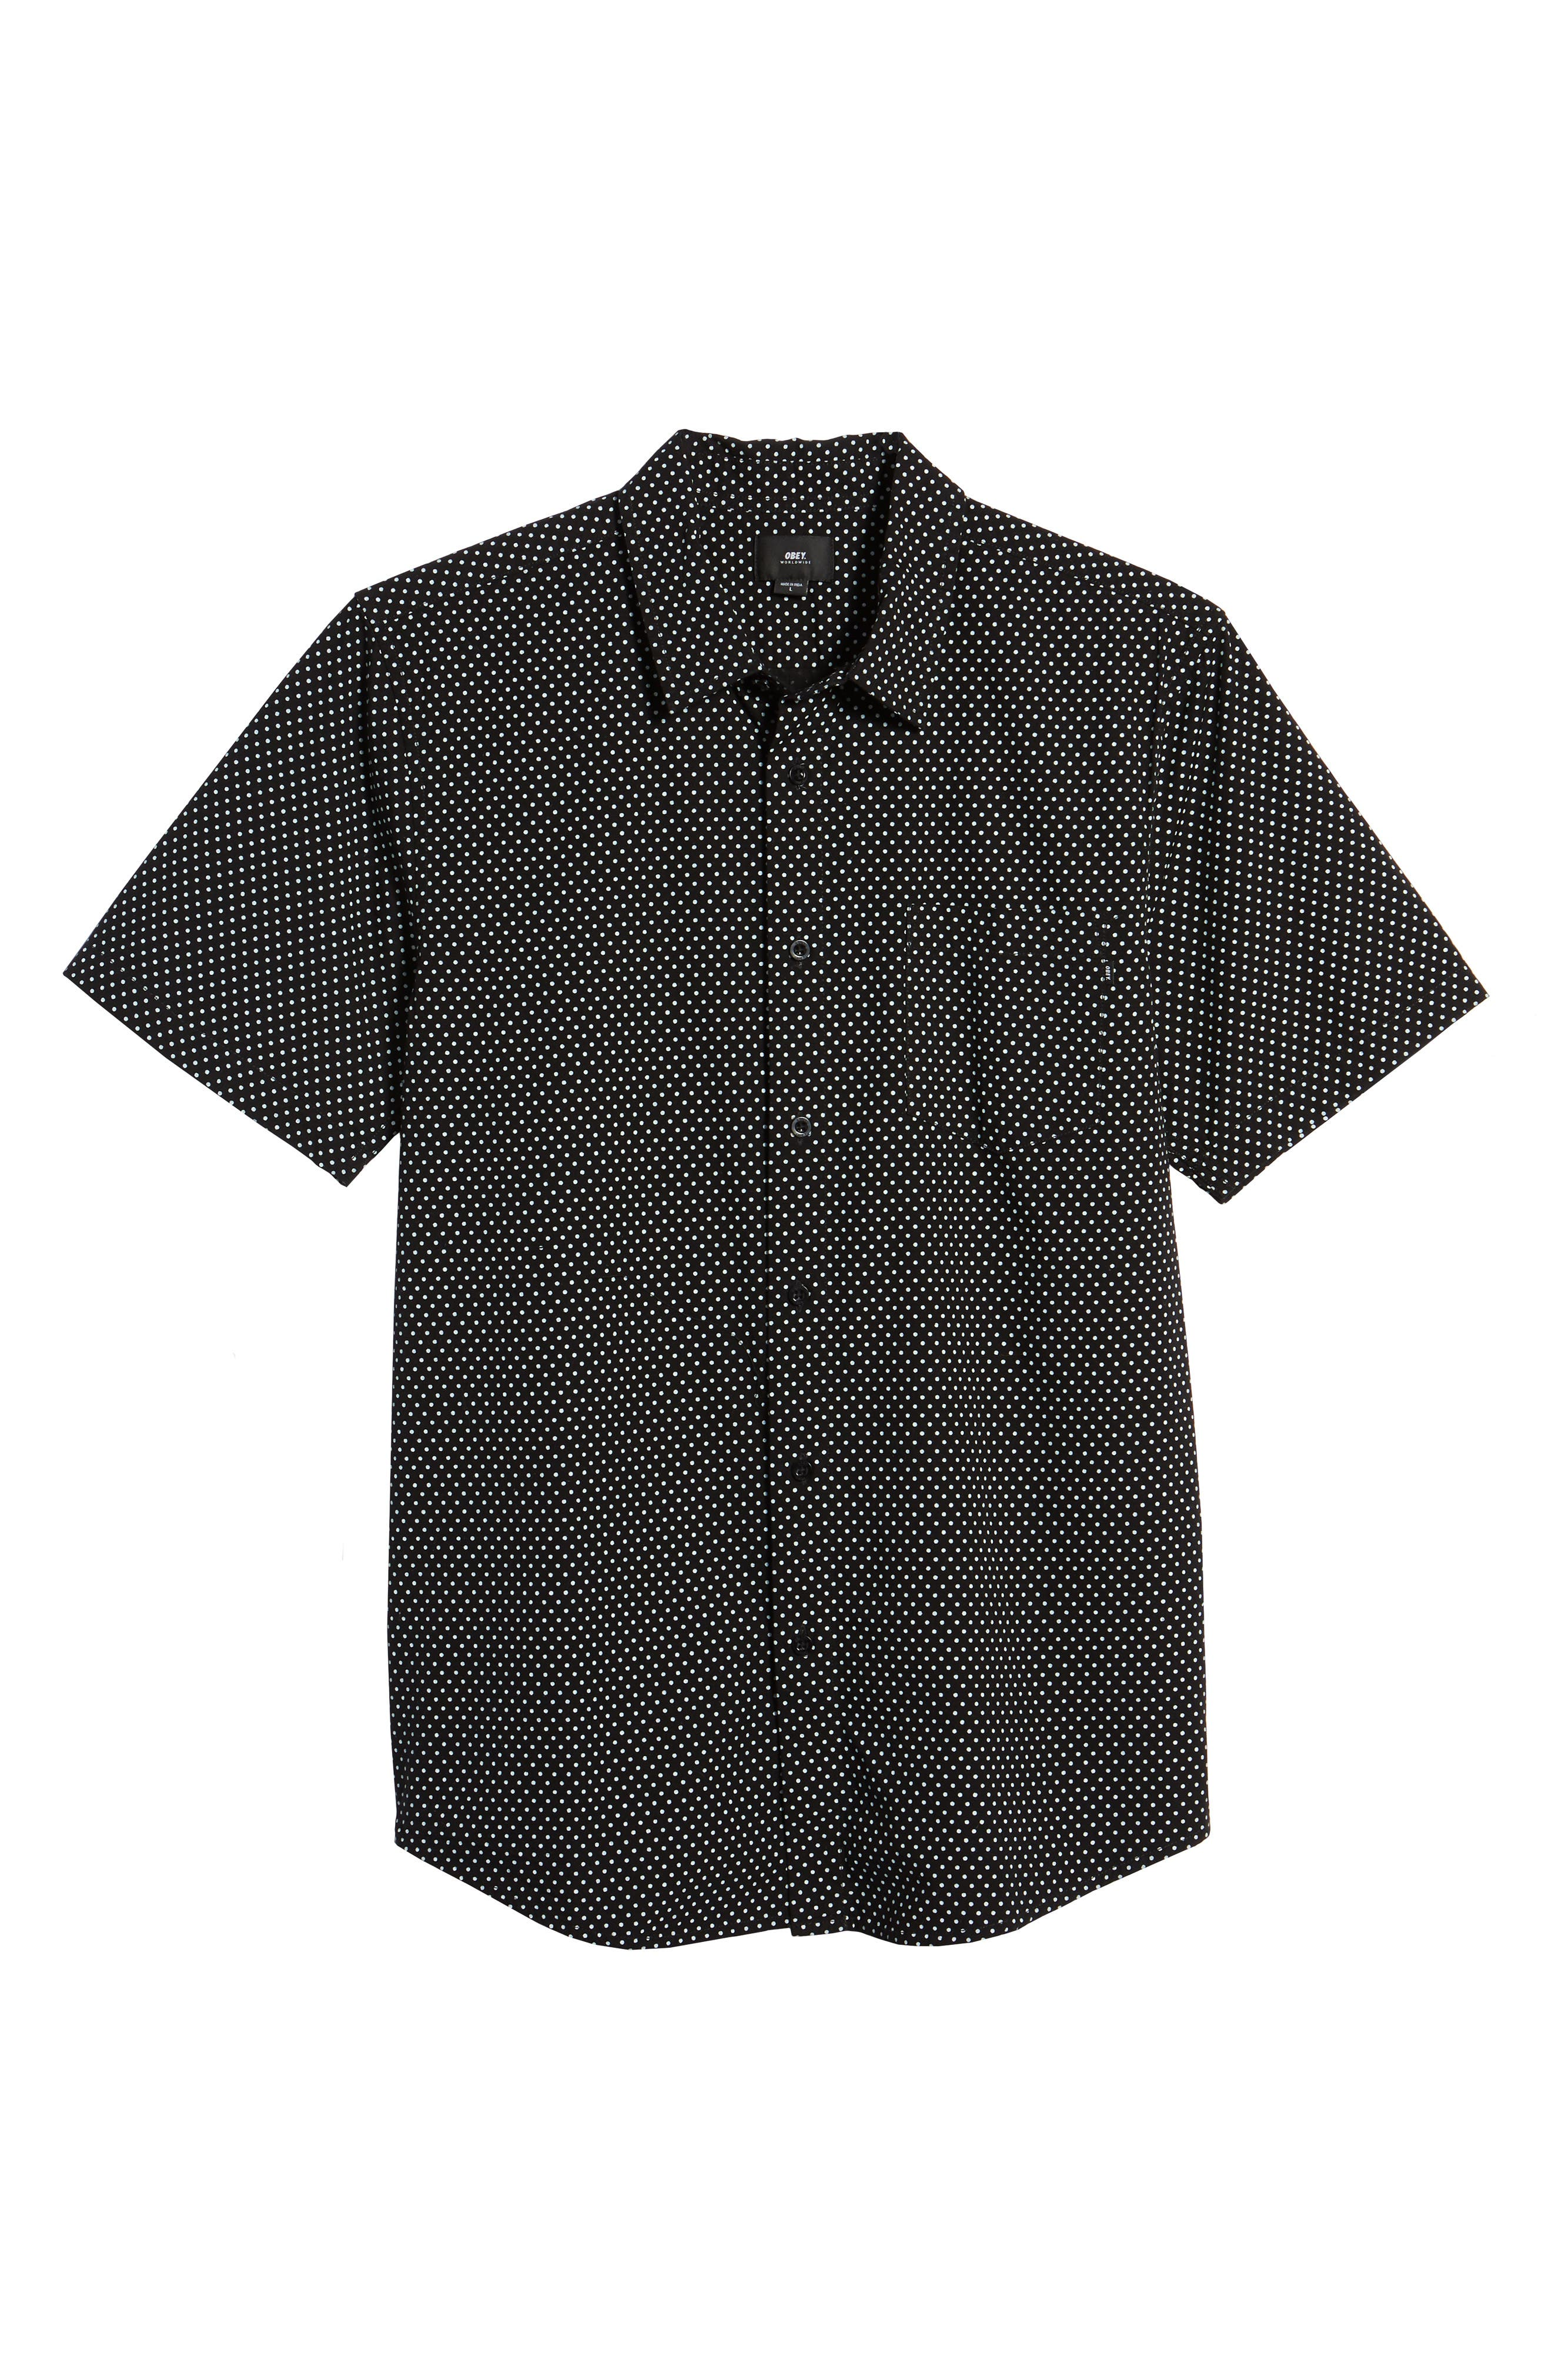 Brozwell Short Sleeve Shirt,                             Alternate thumbnail 6, color,                             Black Multi